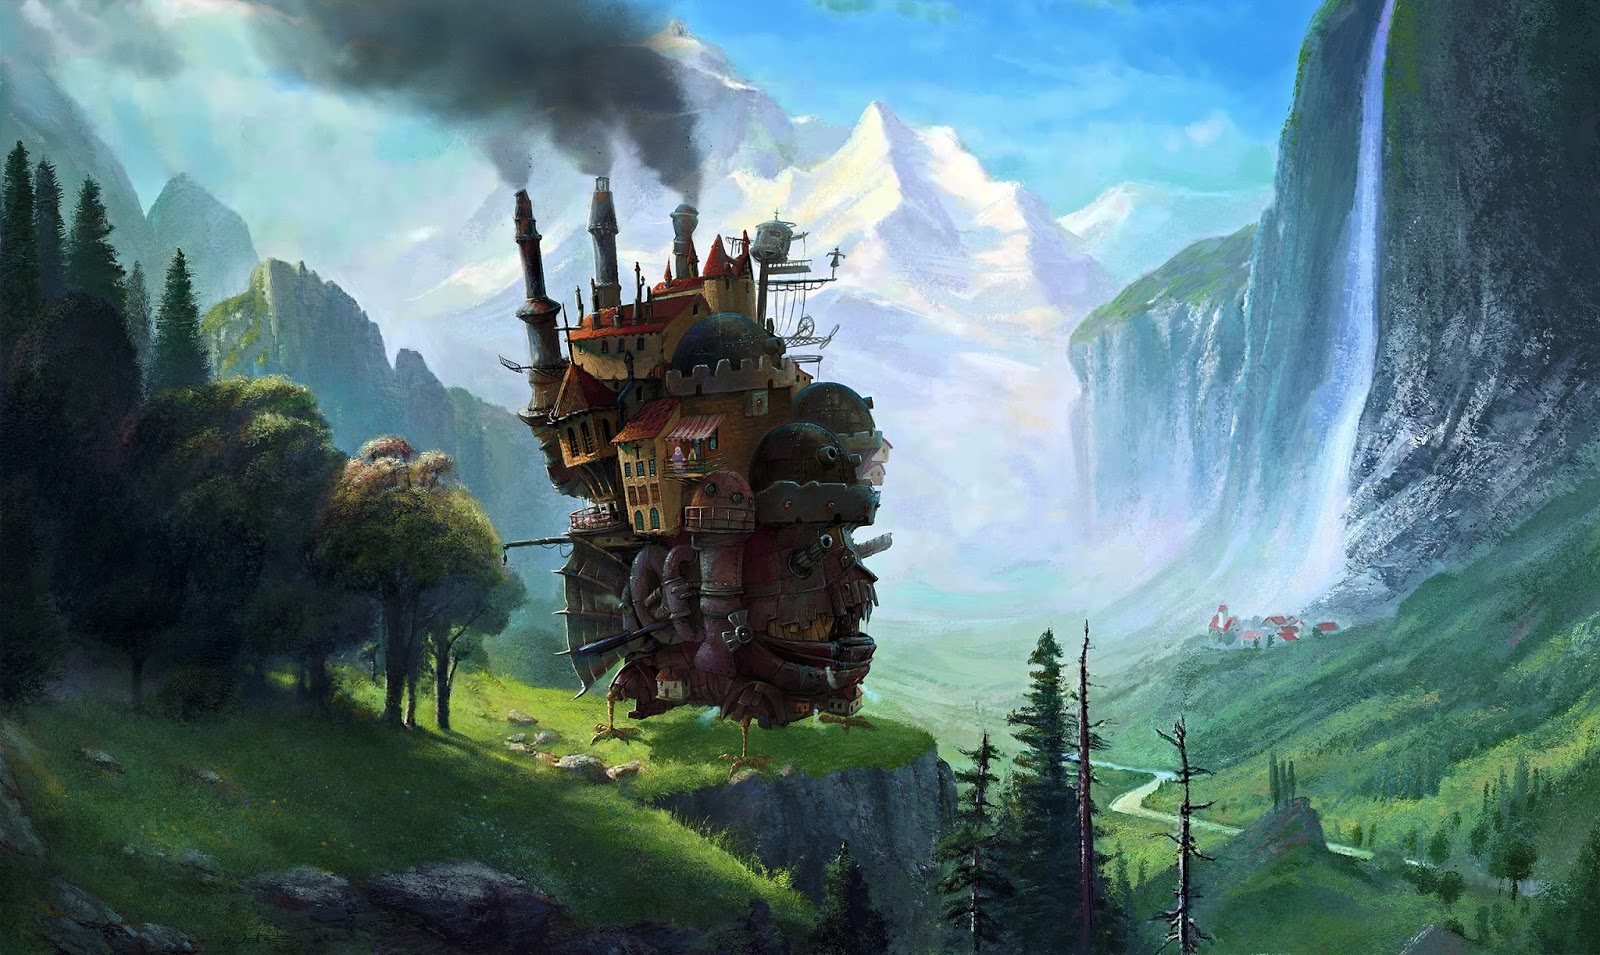 A mashup painting of Howl´s moving castle combined with a repainted version of Albert Bierstadt´s painting Staubbach Falls in Switzerland